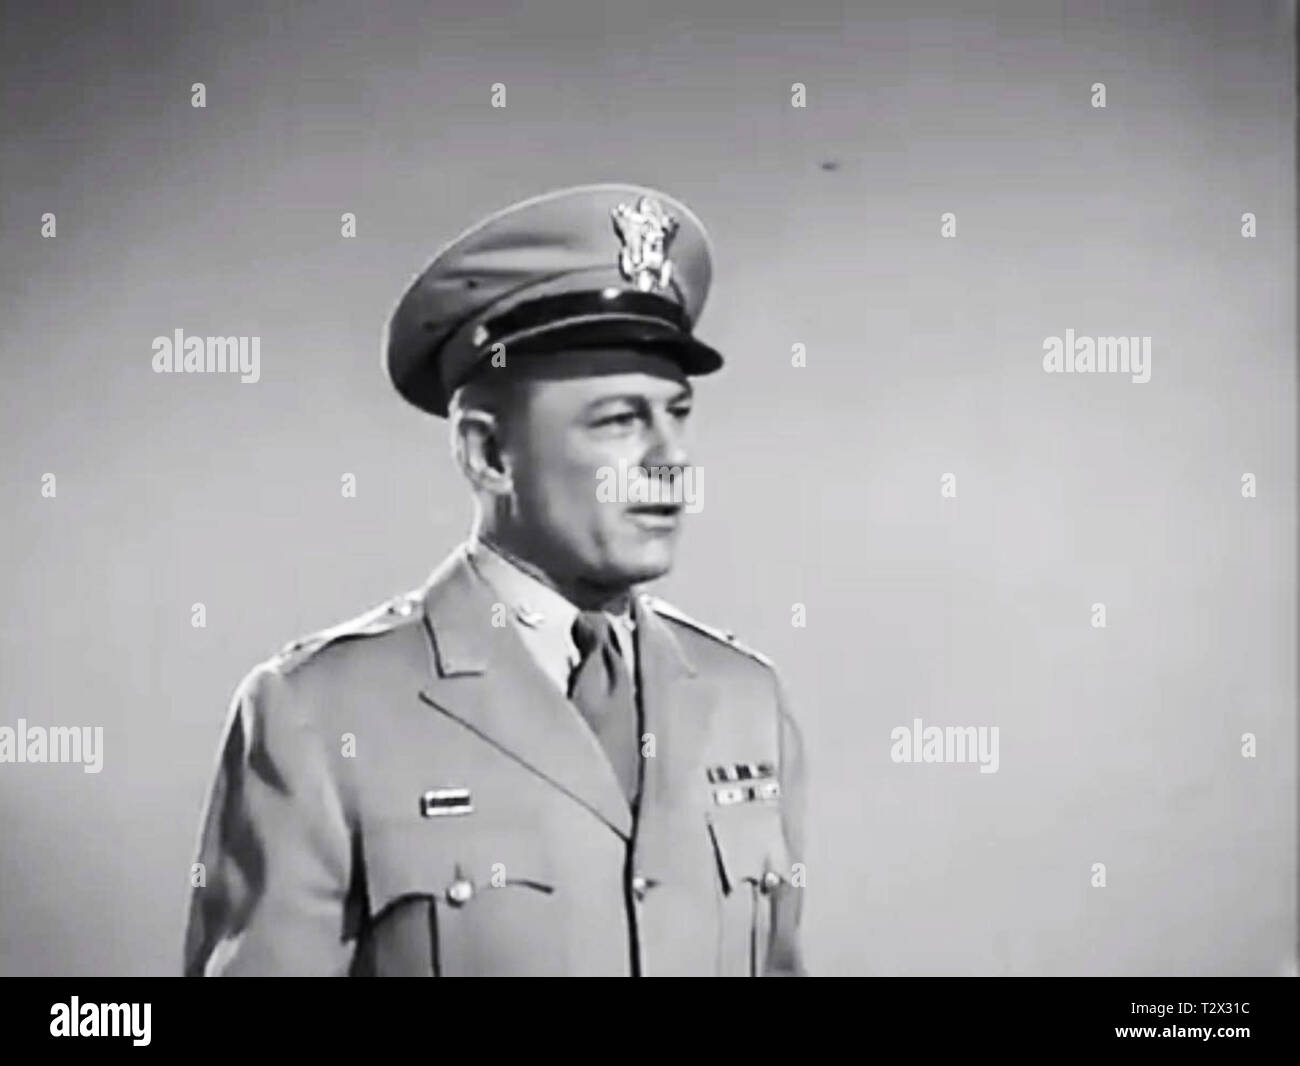 Army and navy screen from Plan 9 From Outer space - Lyle Talbot - Ed Wood - Stock Image